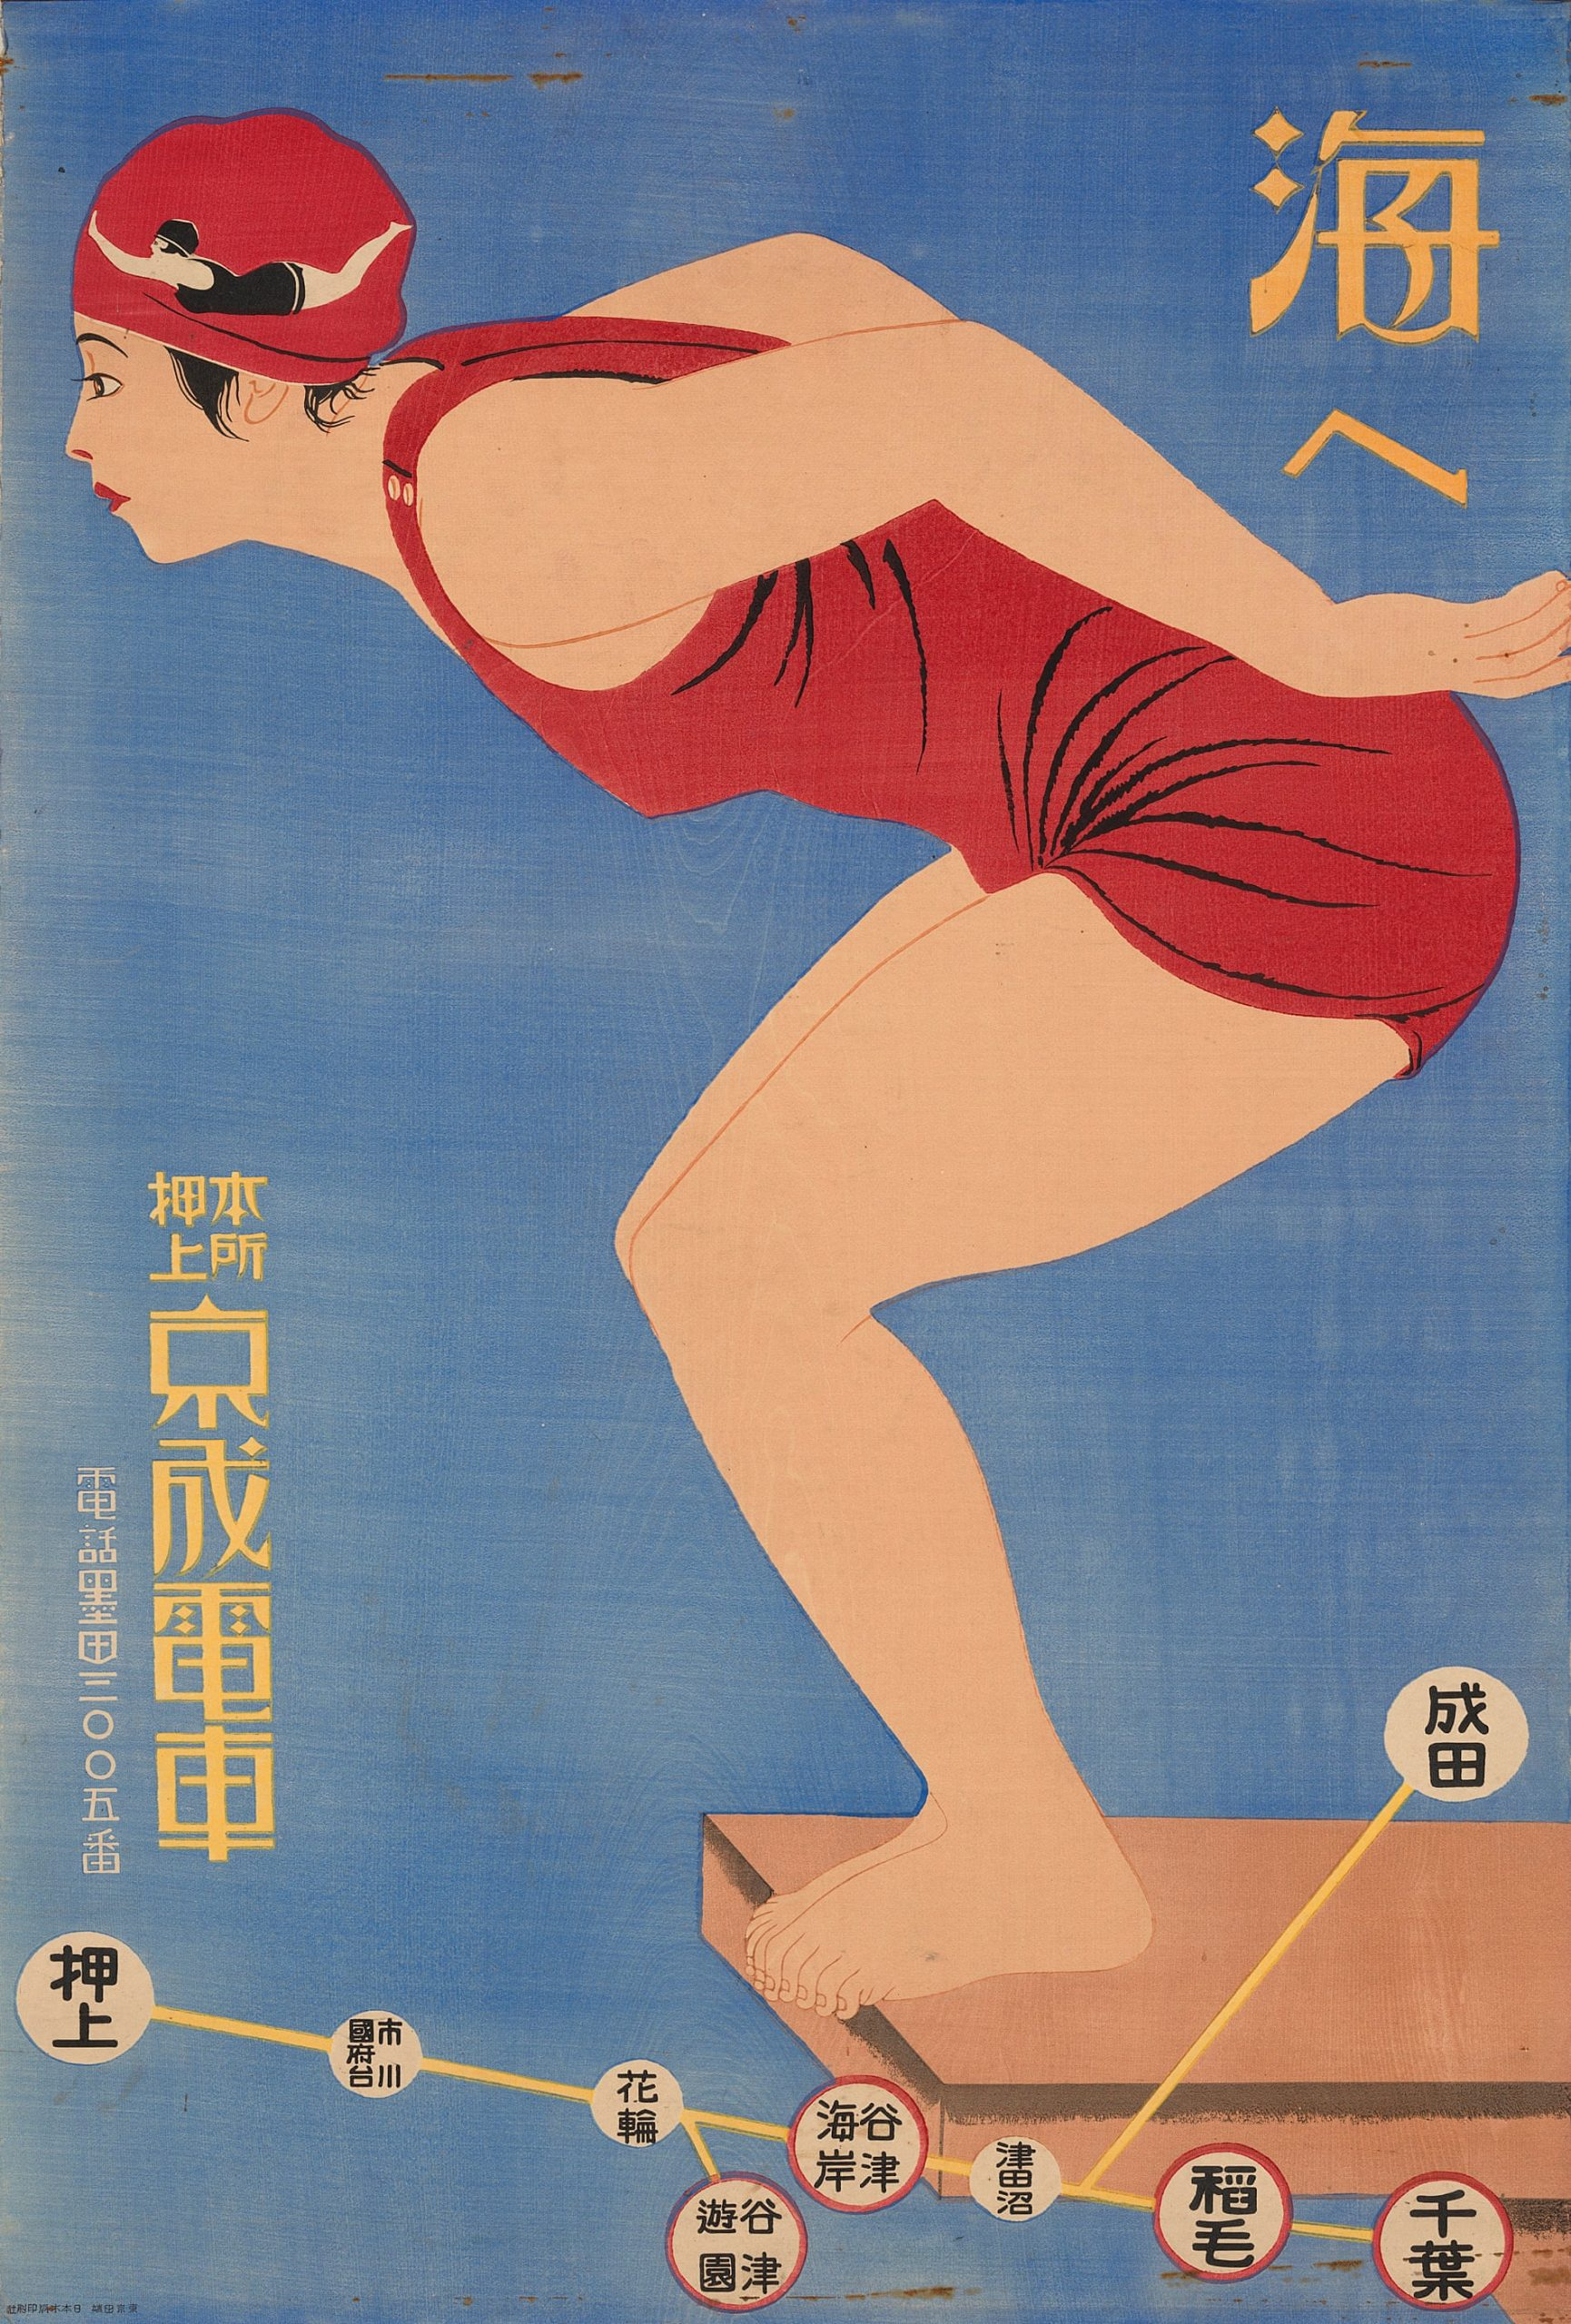 illustrative poster of a woman preparing to jump off a pool diving platform